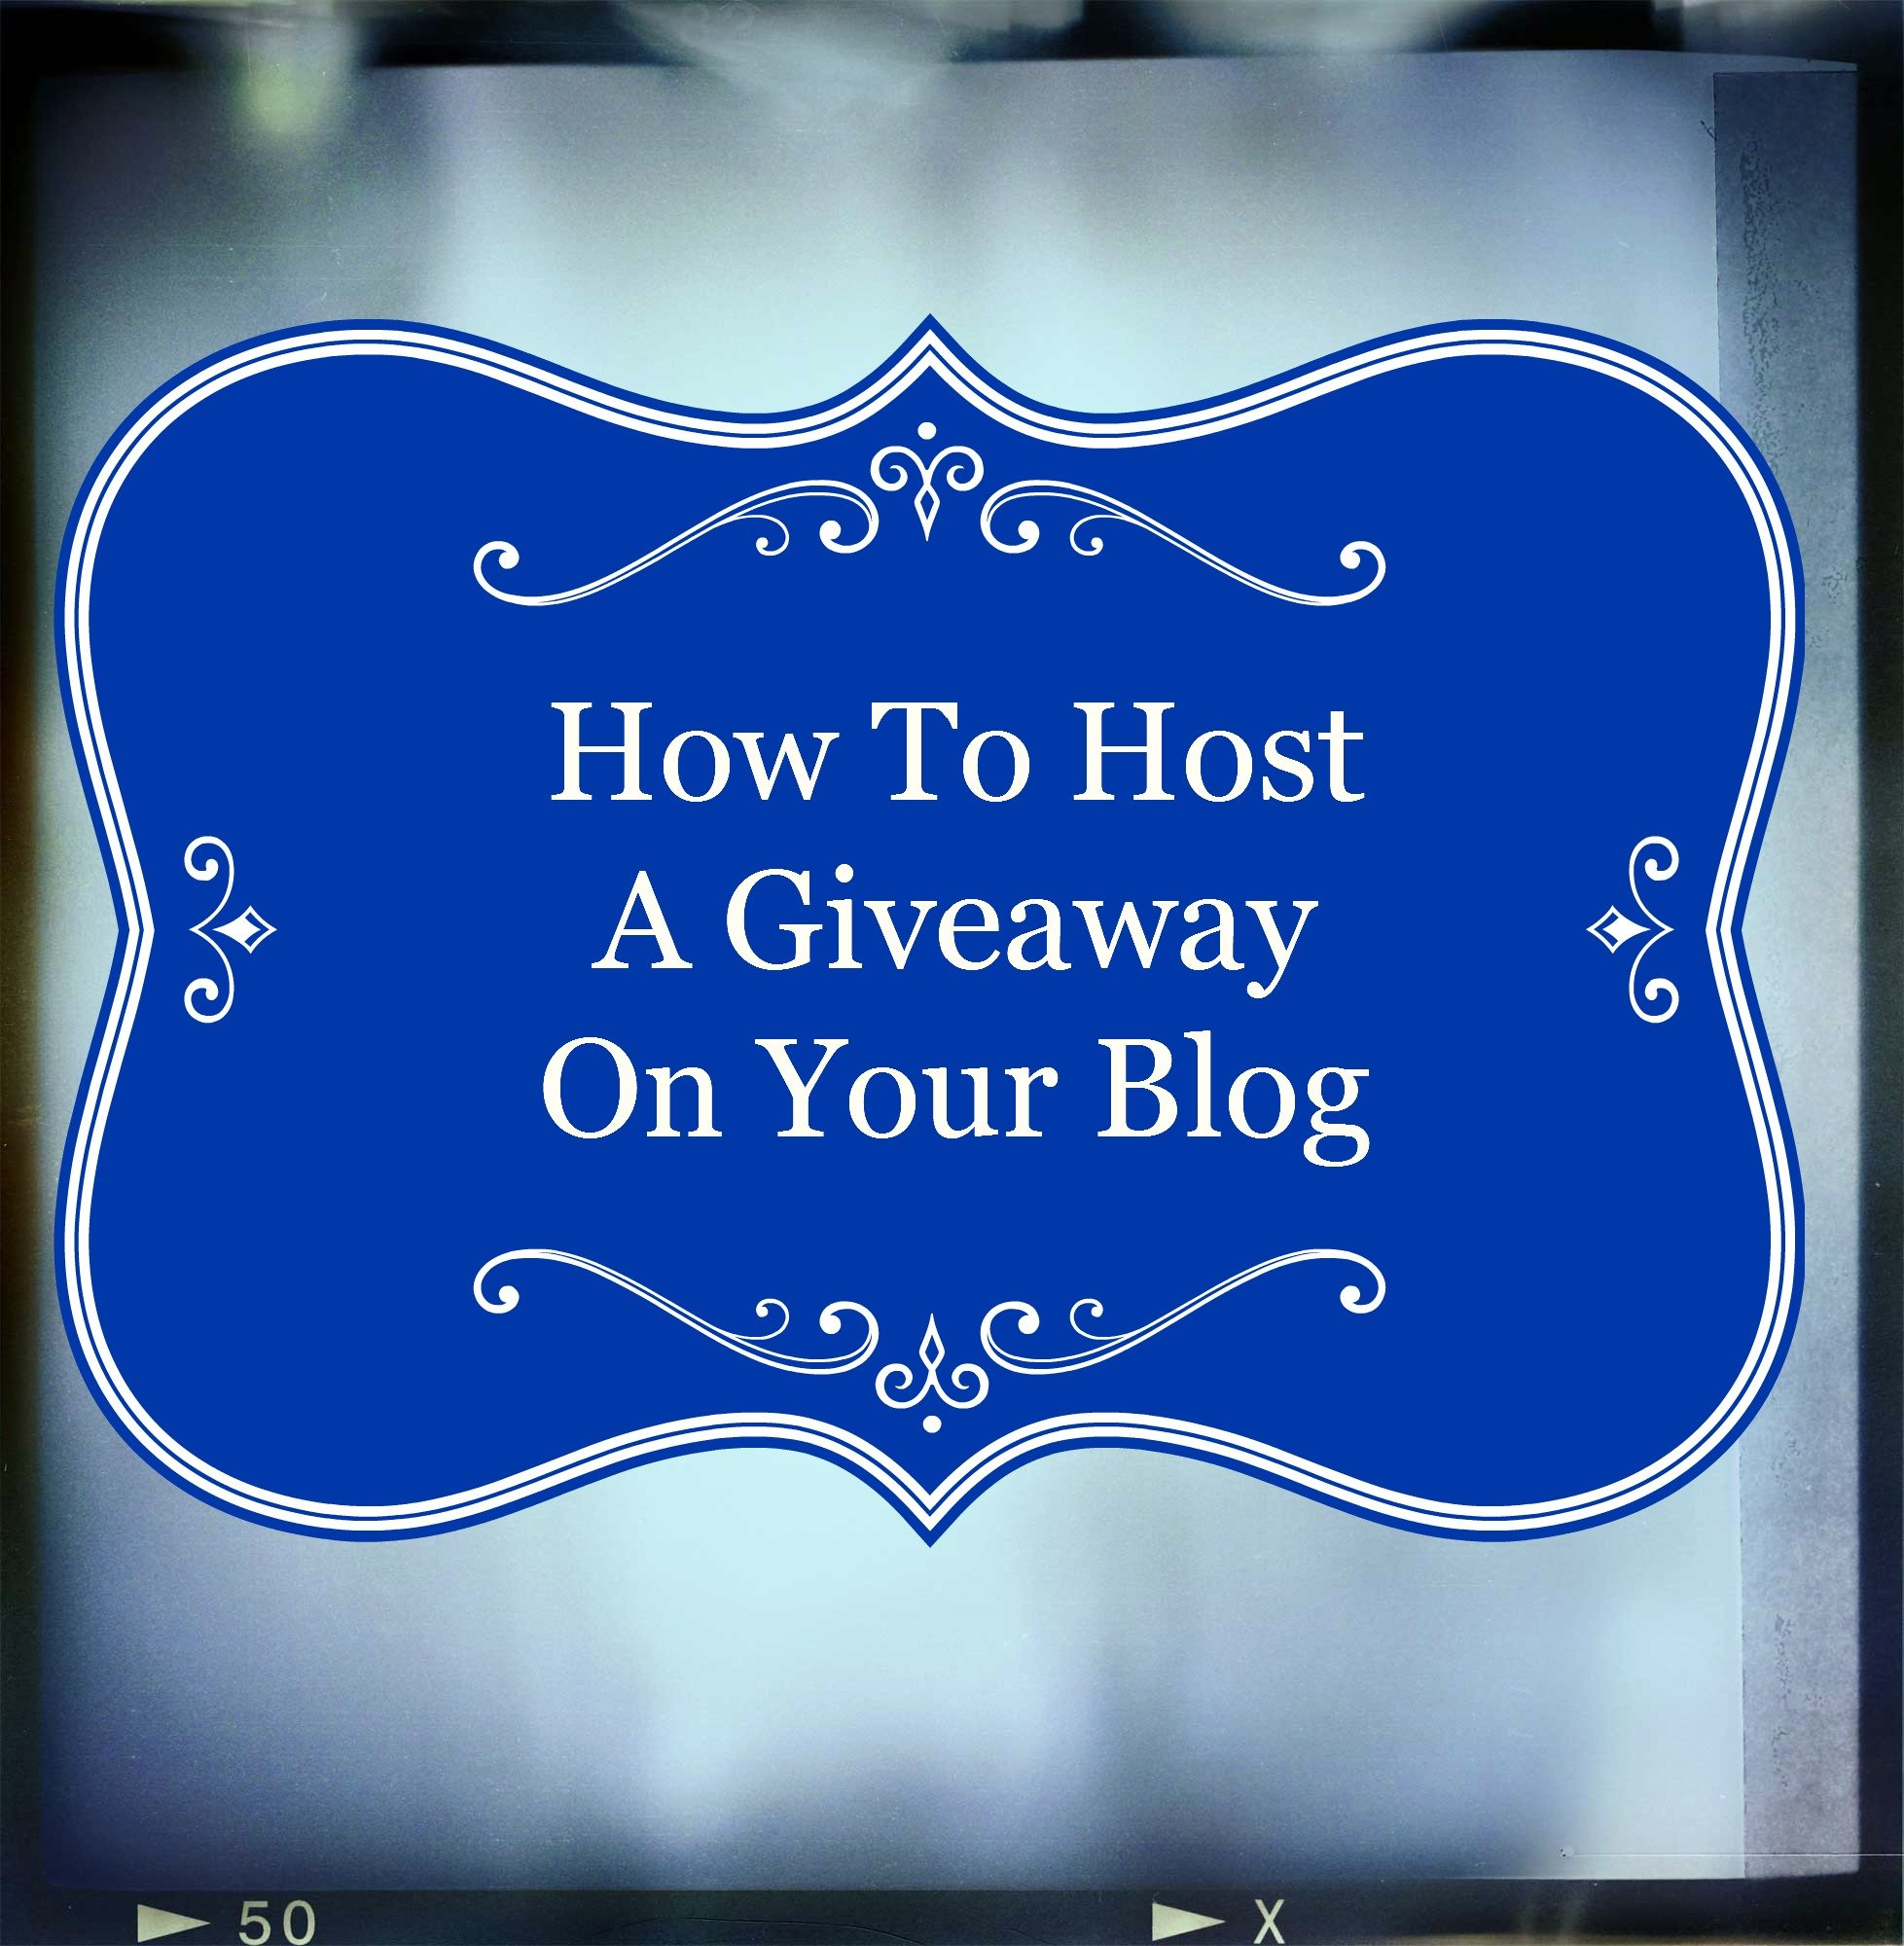 How To Host A Giveaway On Your Blog  Intelligent. Stage 2 Of Meaningful Use Multi Domain Ev Ssl. Title Loans In Atlanta Ga Job Posting Website. Moore Plumbing And Heating Miami Bee Removal. How To Calculate Roi Real Estate. Denver Technical College Transcripts. Vps Trial No Credit Card Aqua Water Softeners. Performance Self Assessment Sample. Responsibilities Of A Medical Assistant